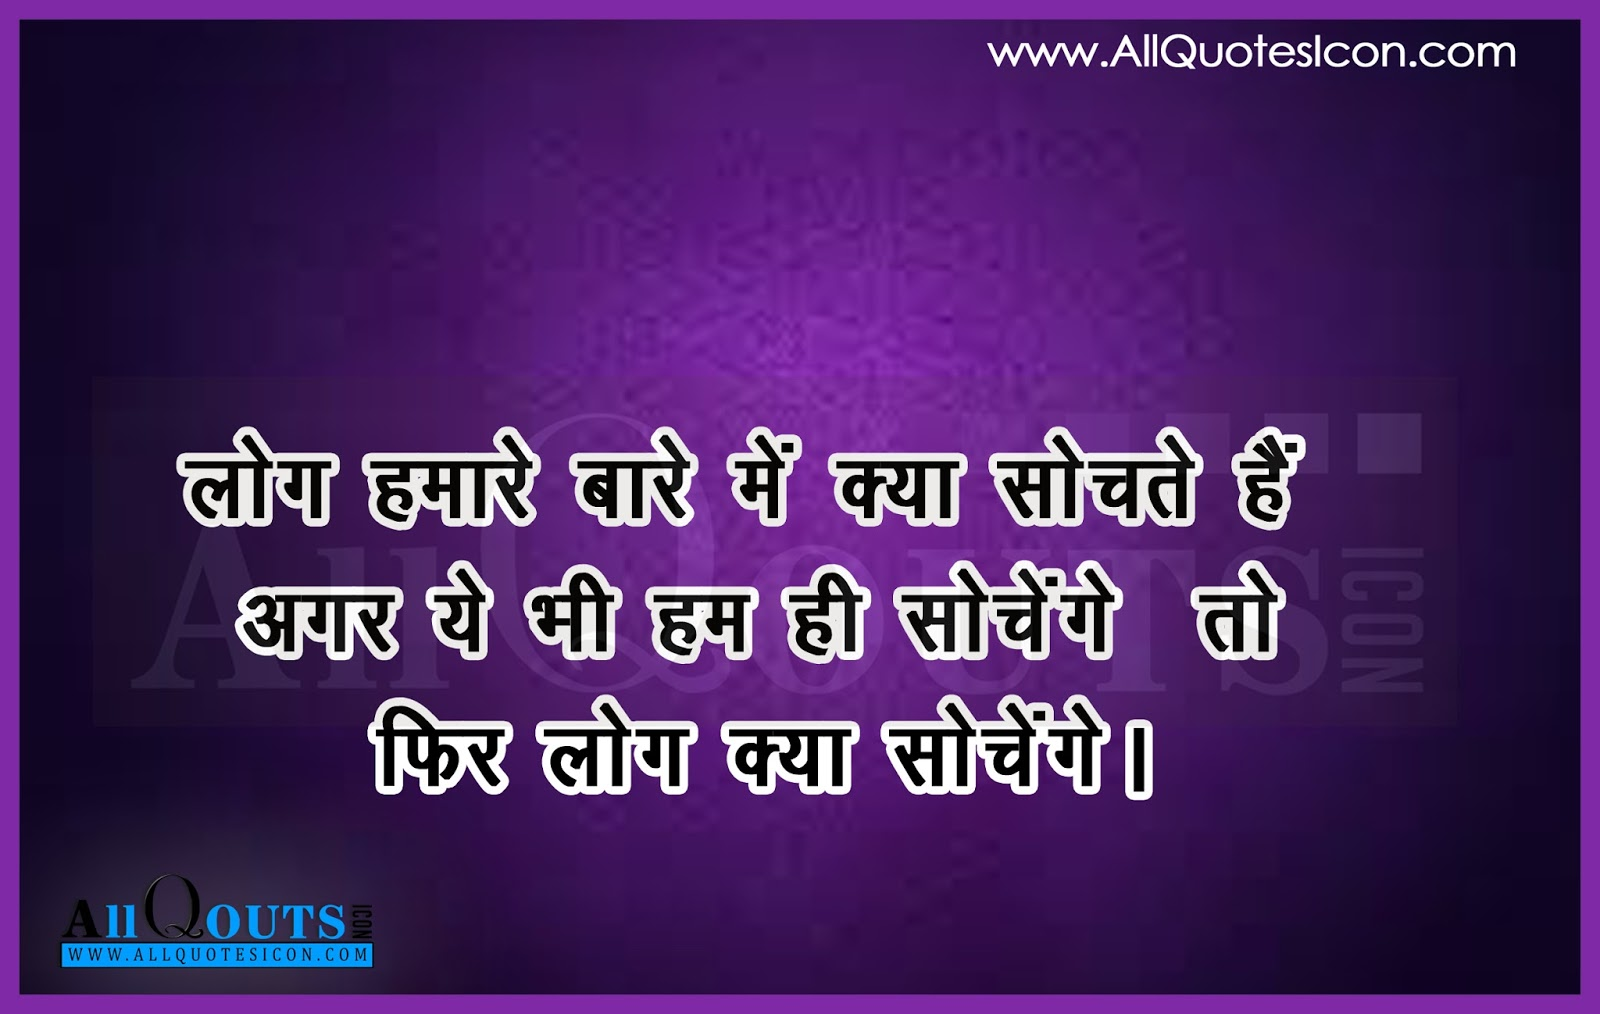 Motivational Quotes In Hindi On Struggle With Whatsapp